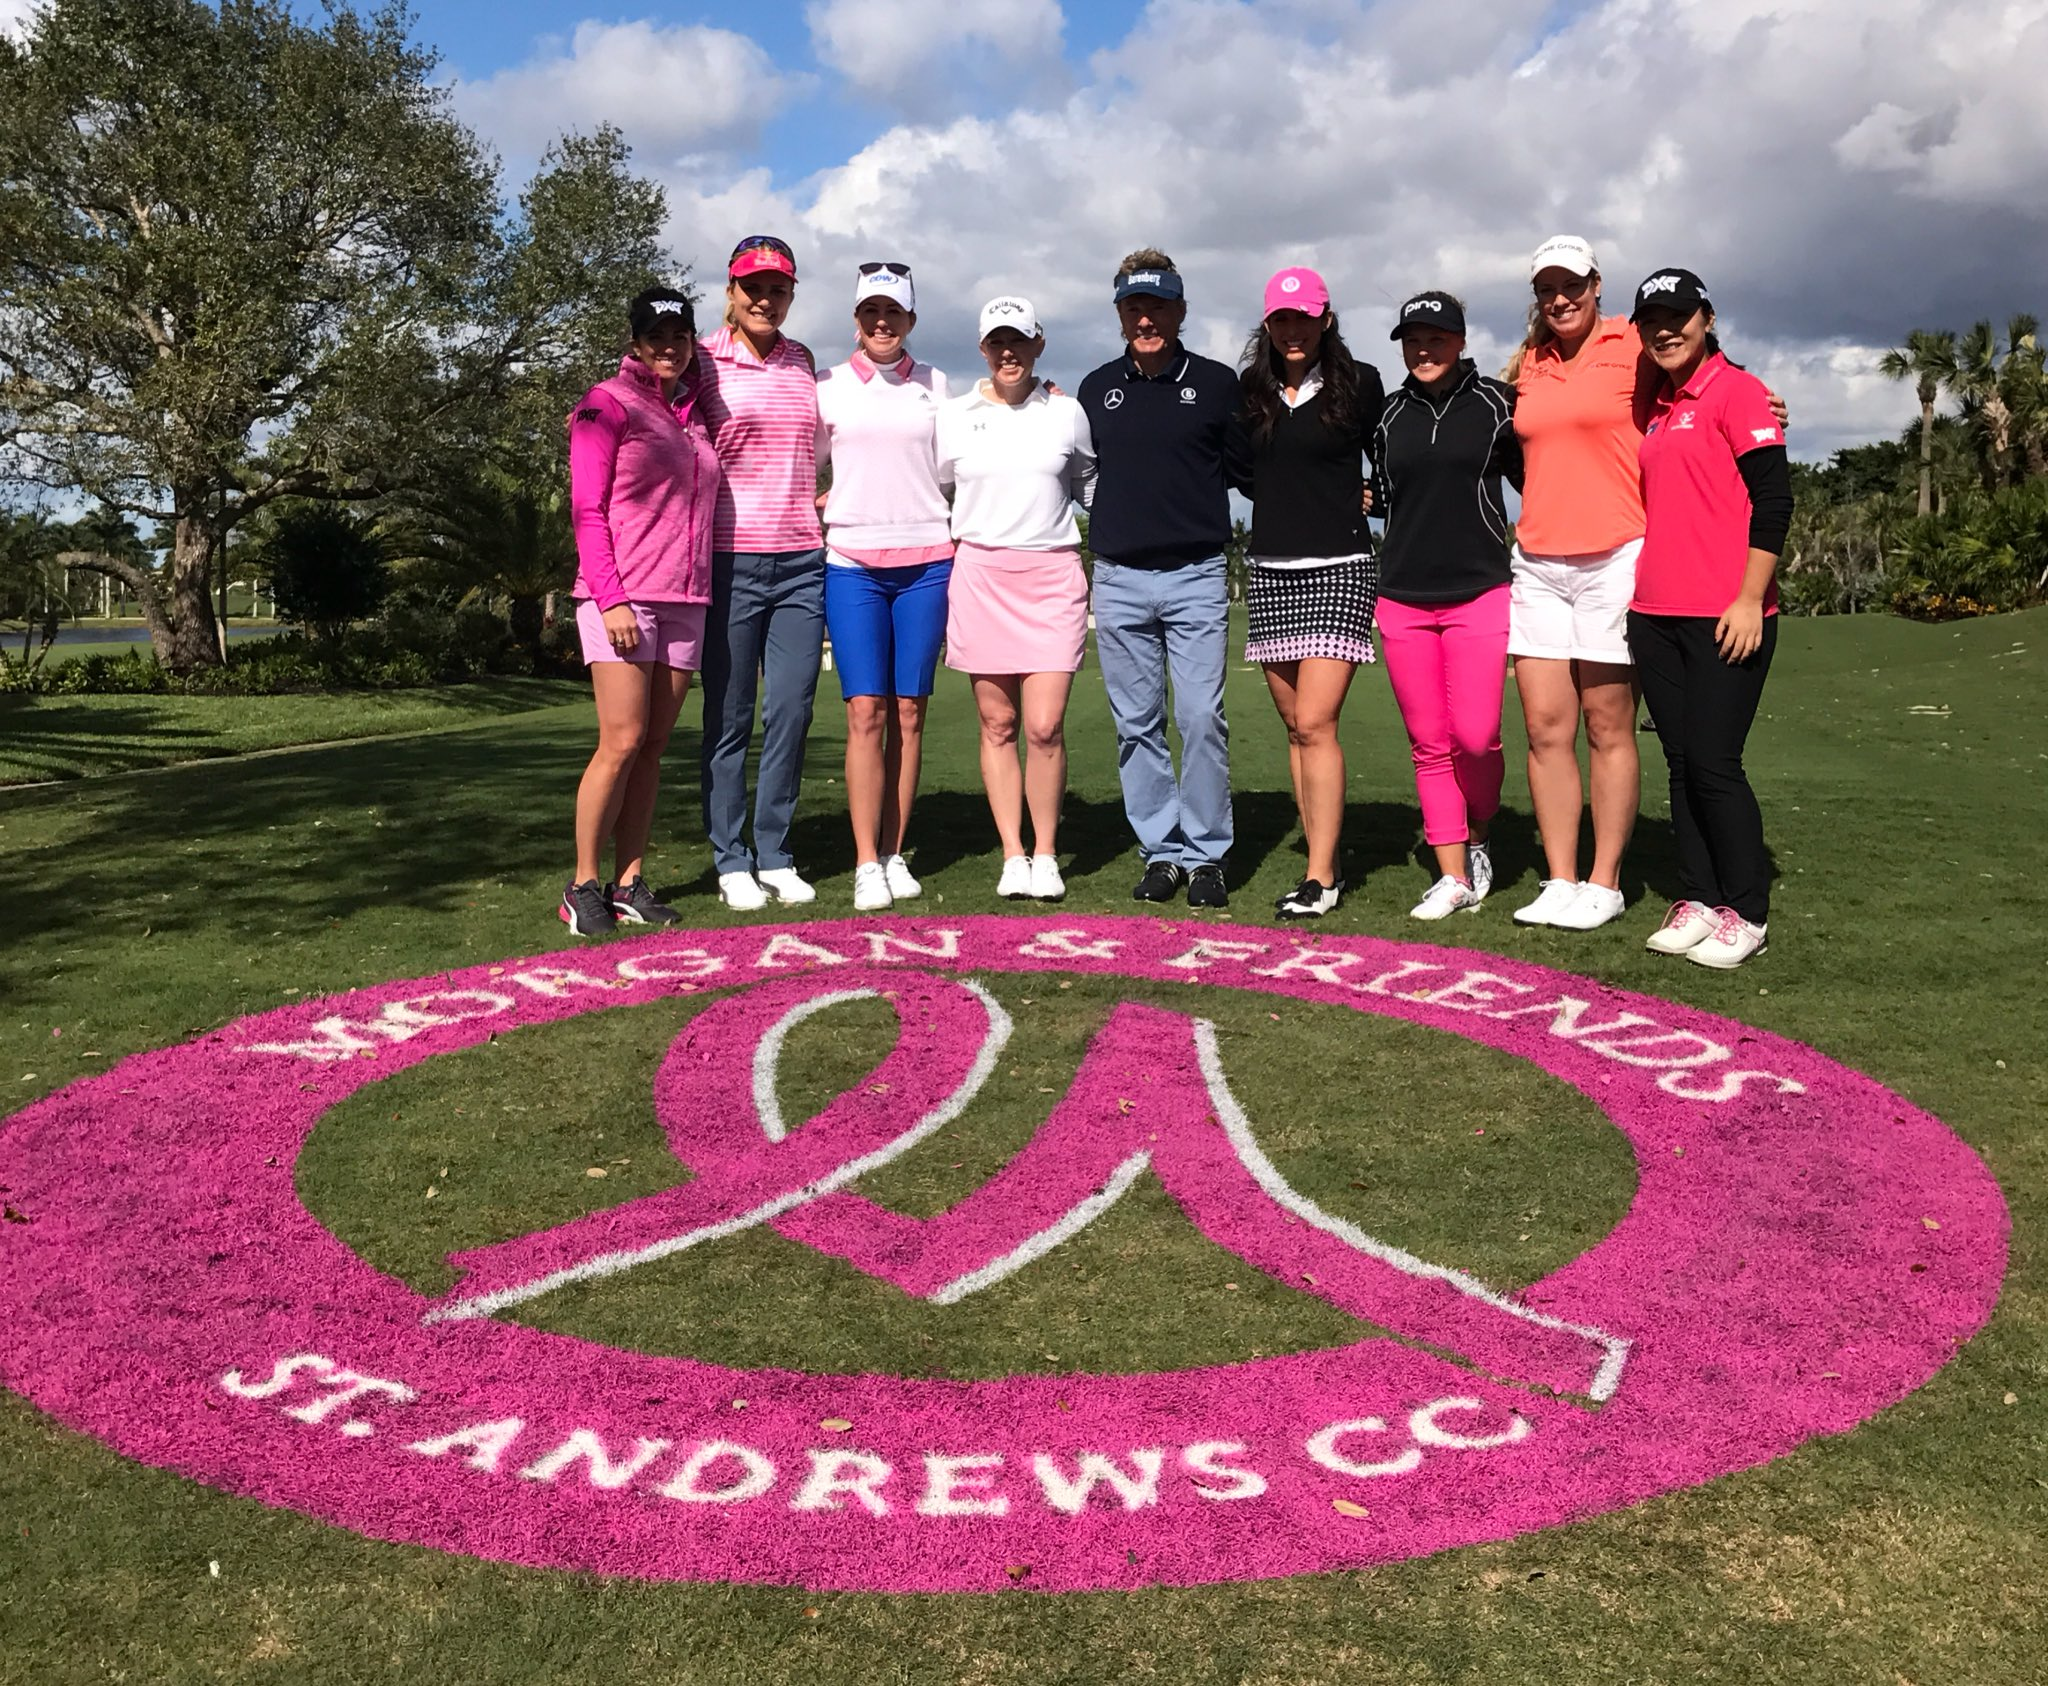 A fabulous group of professionals out today to support #MorganandFriends17! 💗🎀 https://t.co/m2pl1cCw3X